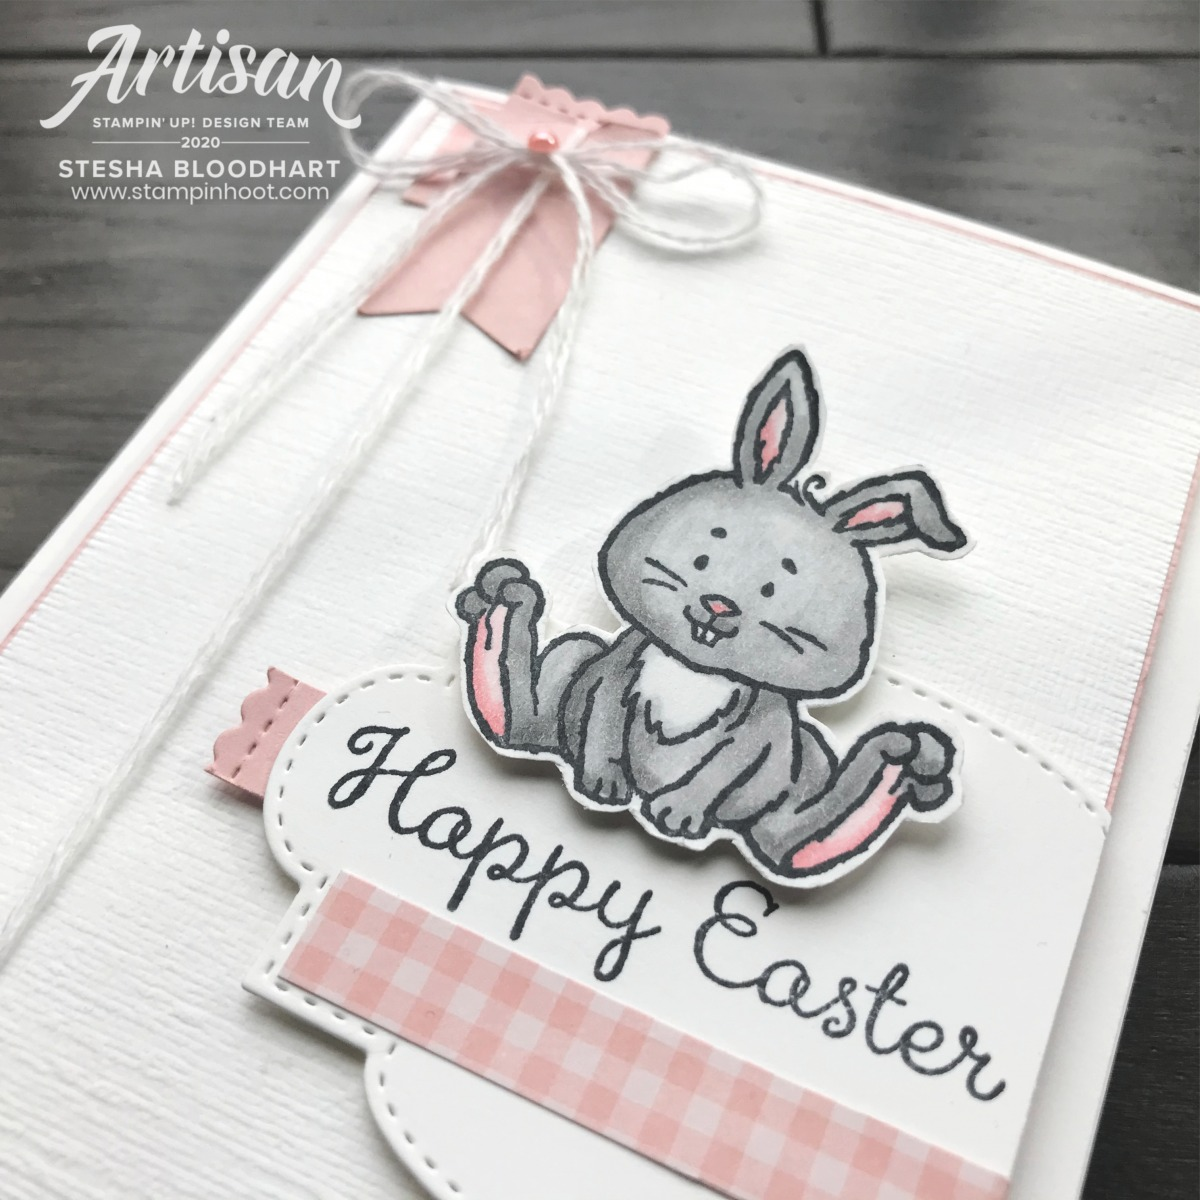 Welcome Easter Stamp Set by Stampin' Up! Card by Stesha Bloodhart, Stampin' Hoot! 2020 Artisan Design Team